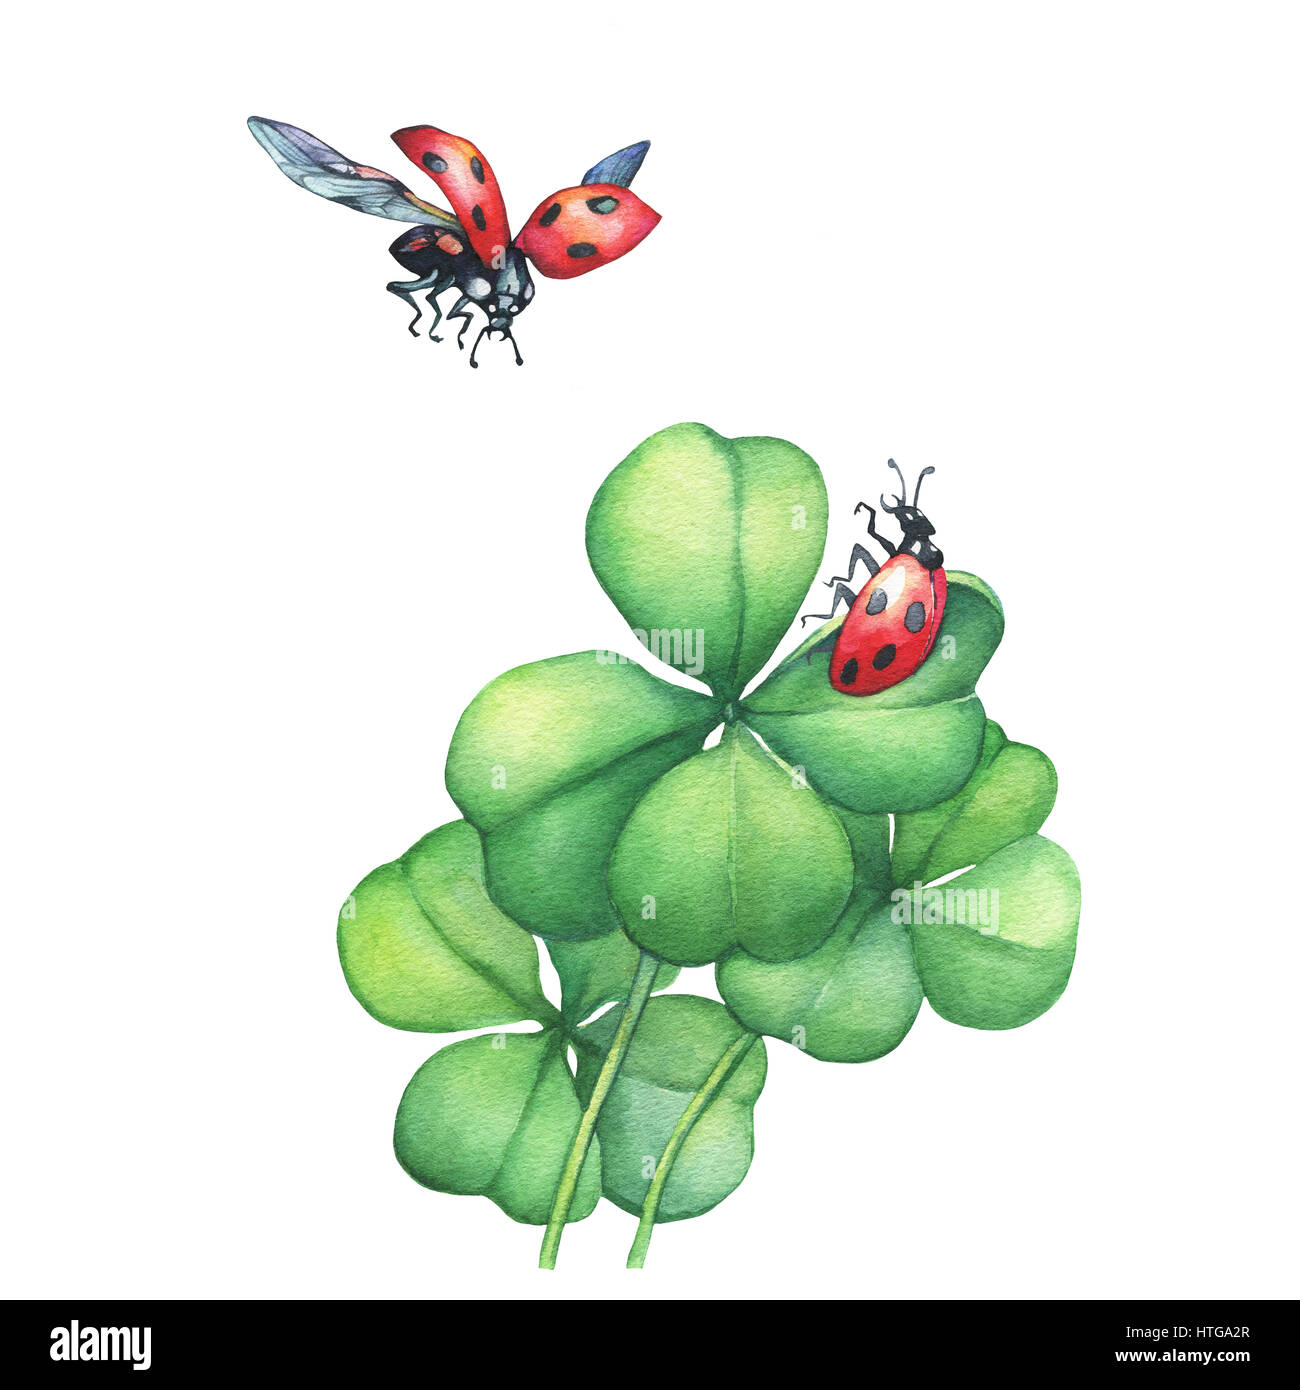 ladybug in flight and sitting on a green four leaf clover hand